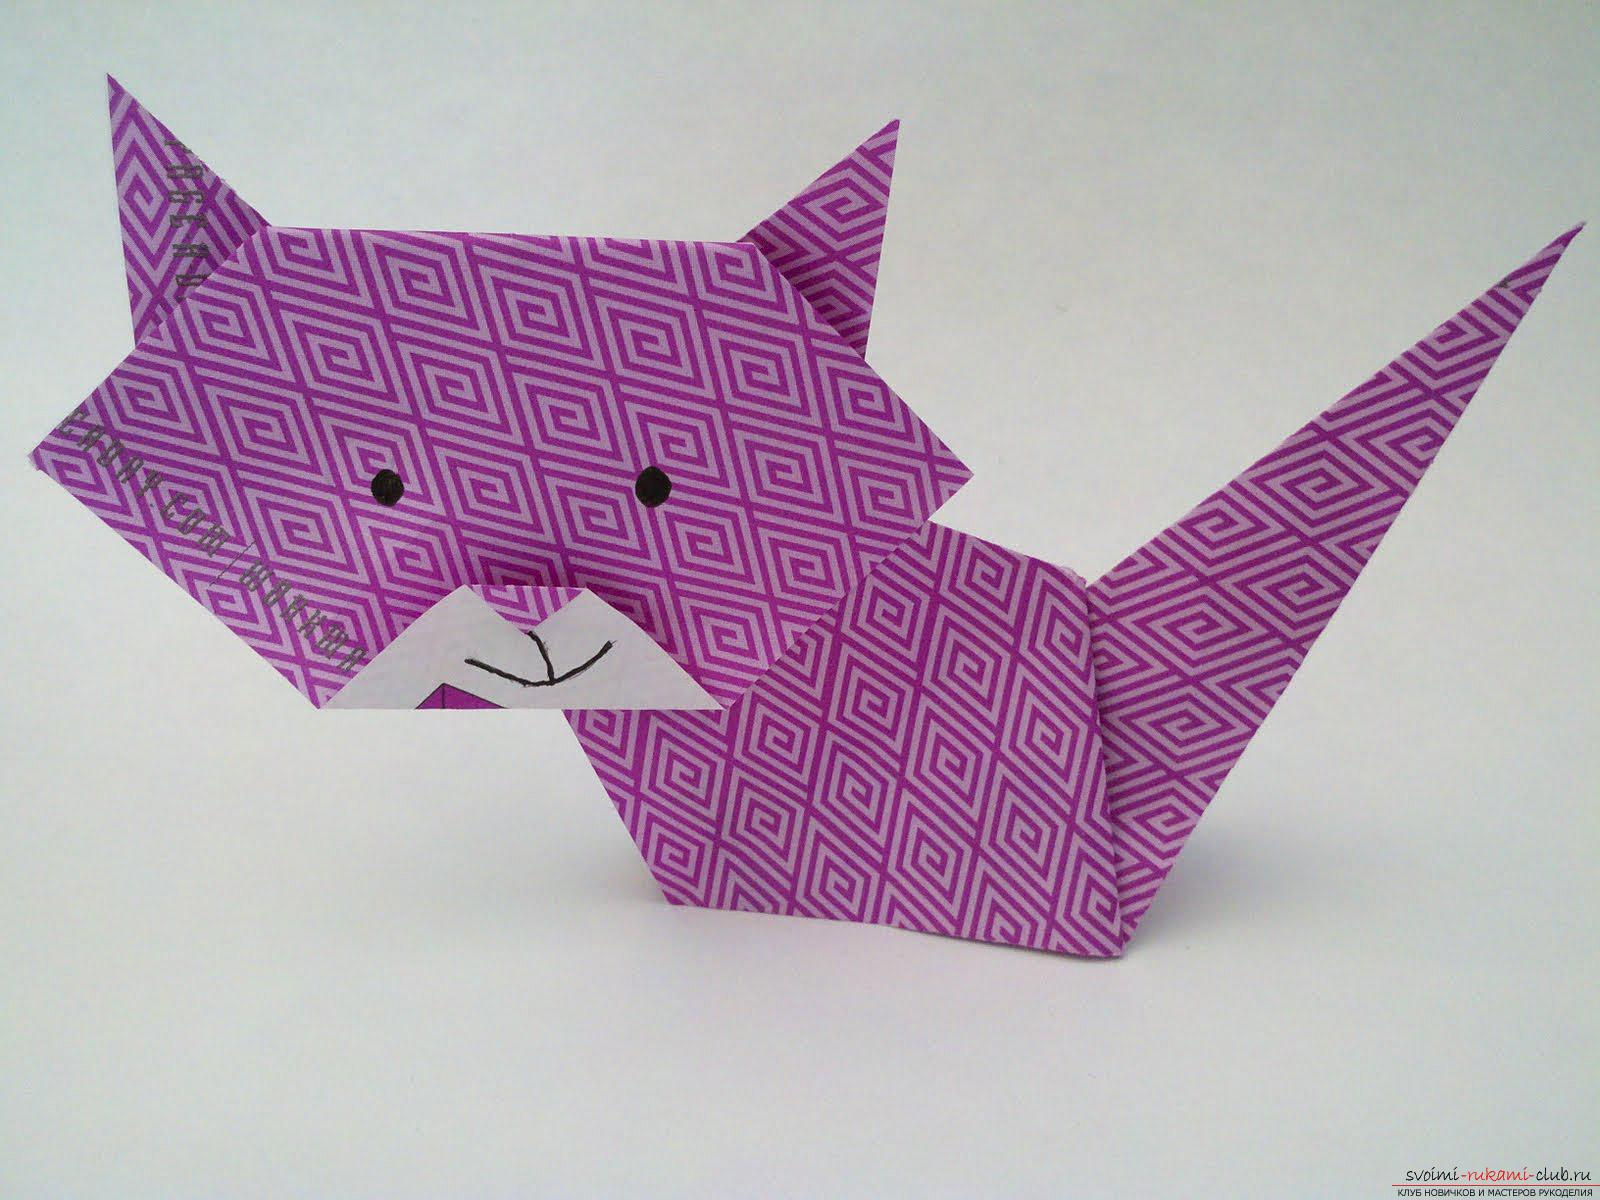 Simple schemes for the addition of cats in the technique of origami. Photo №1